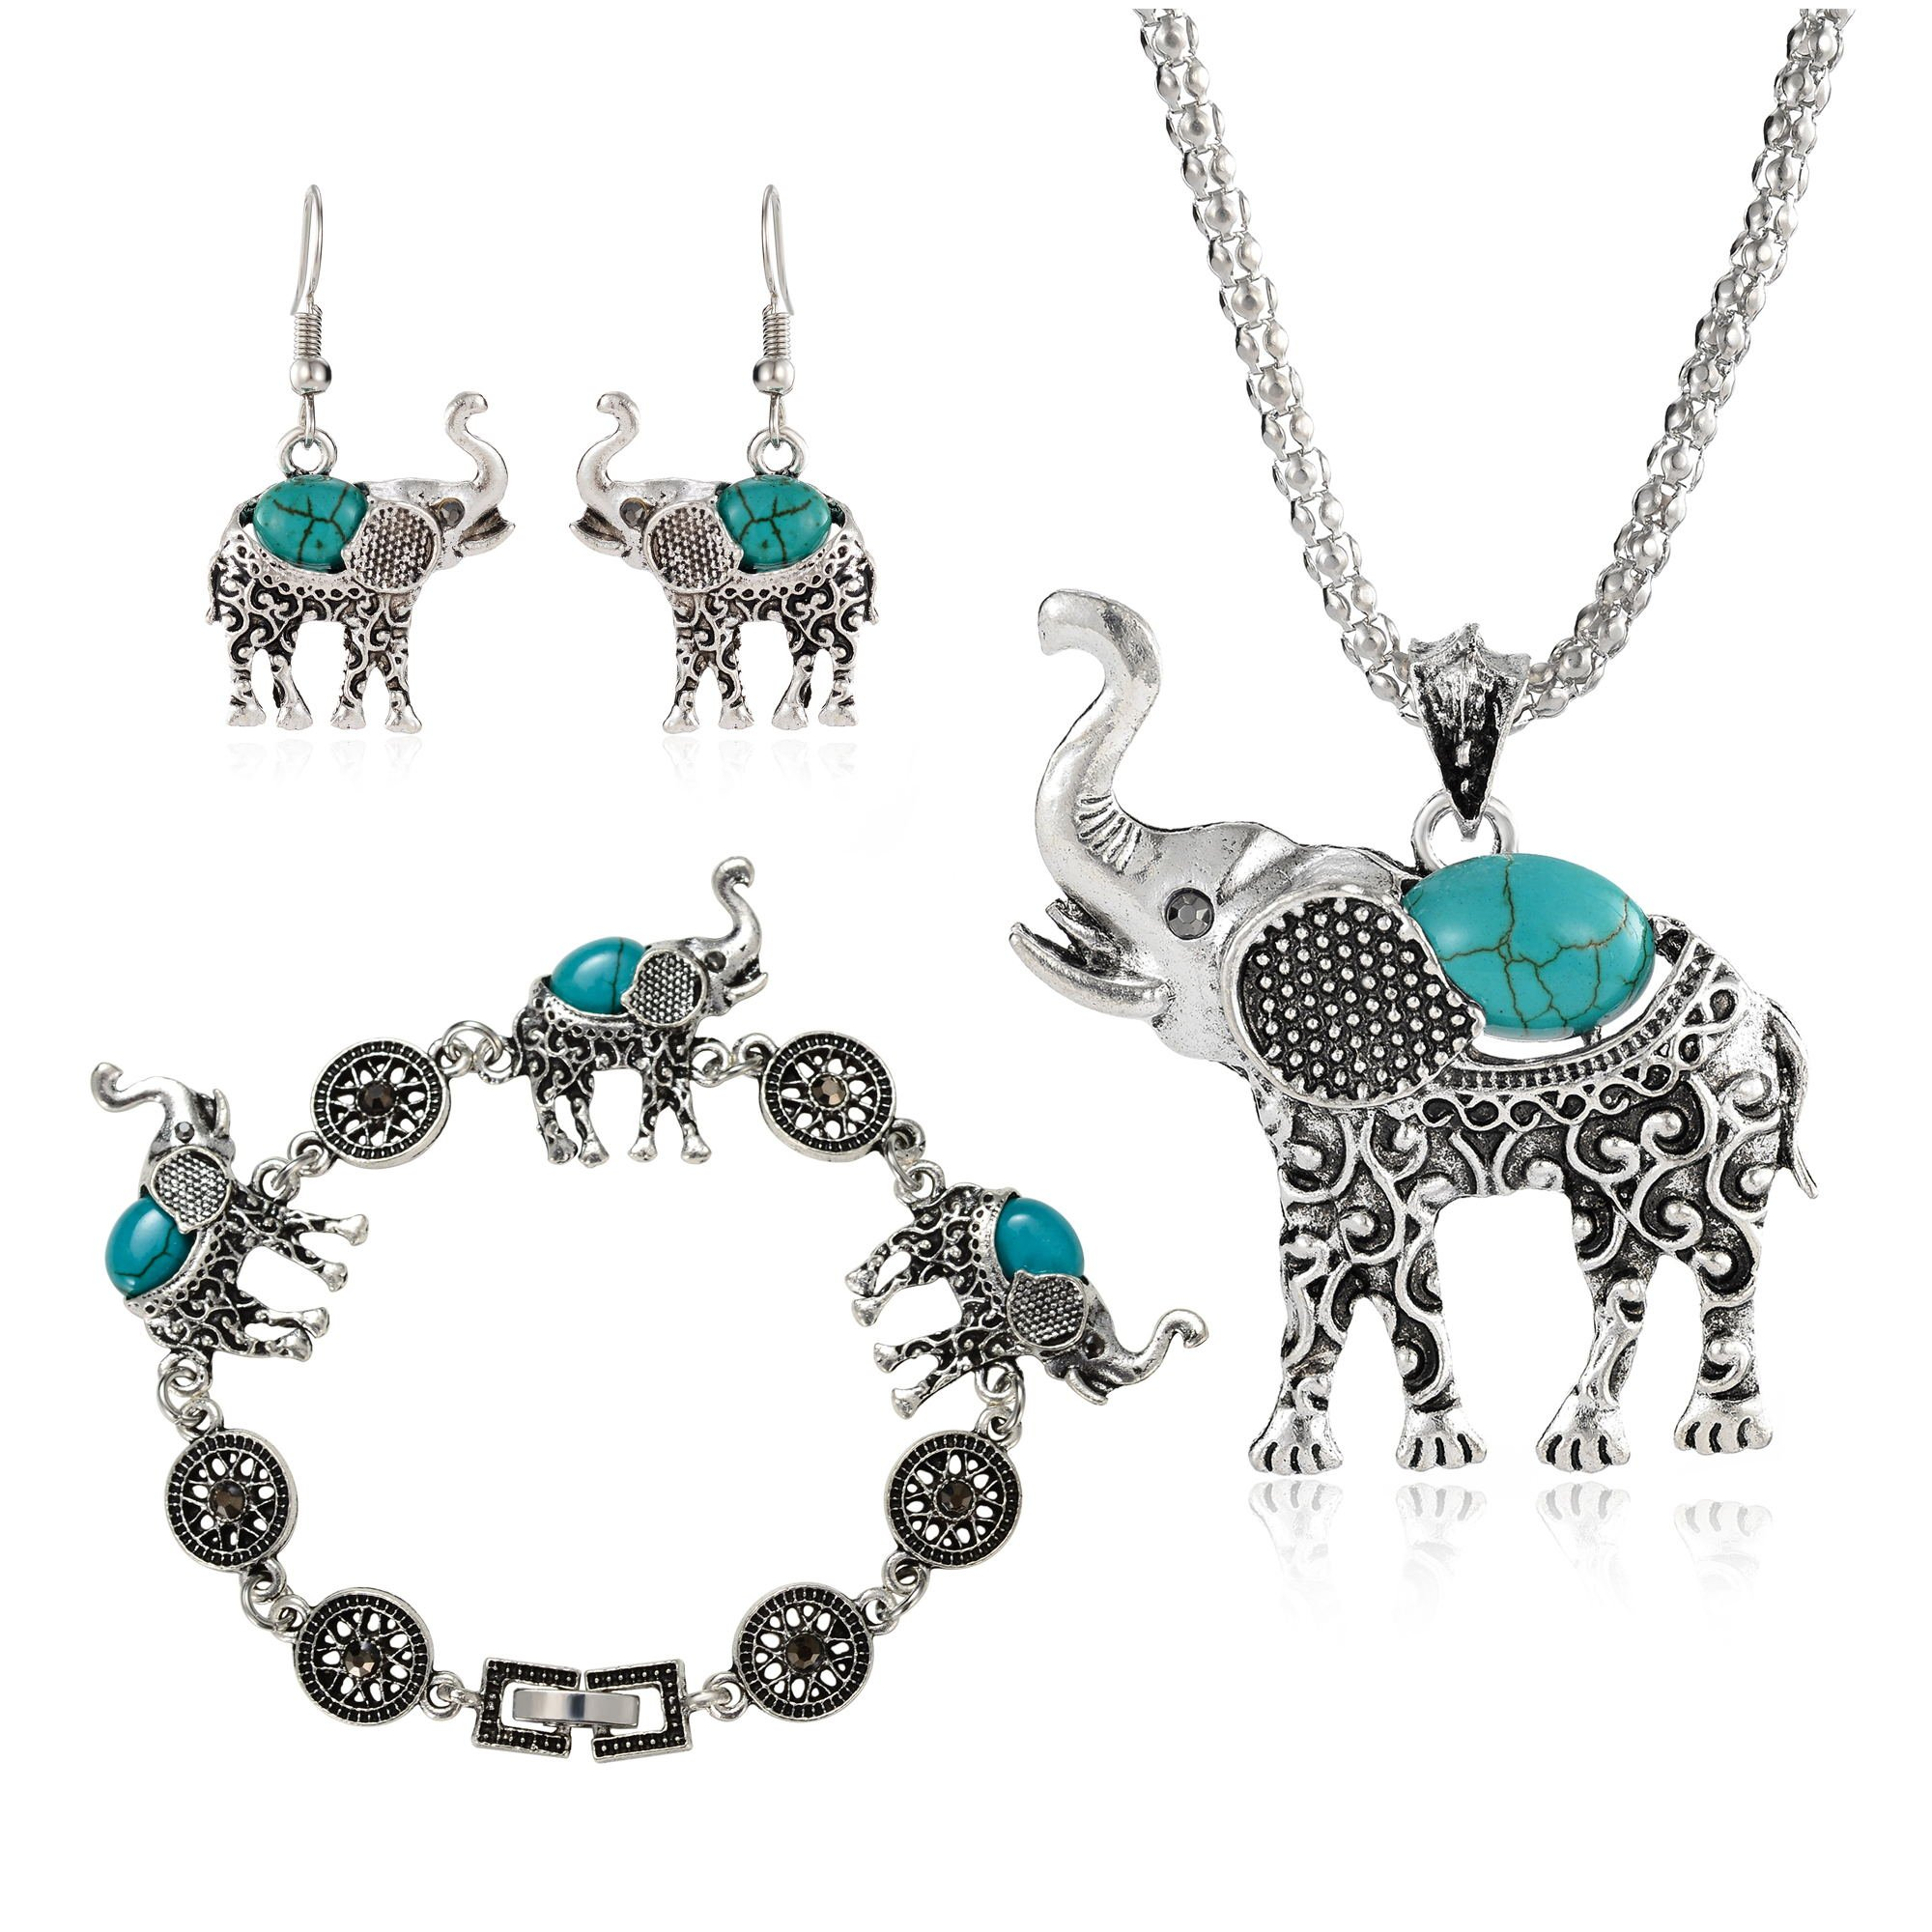 Miraculous Garden Womens Vintage Silver Ethnic Tribal Elephant Boho Pendant Necklace Drop Earrings Link Bracelet Jewelry Sets (Turquoise)